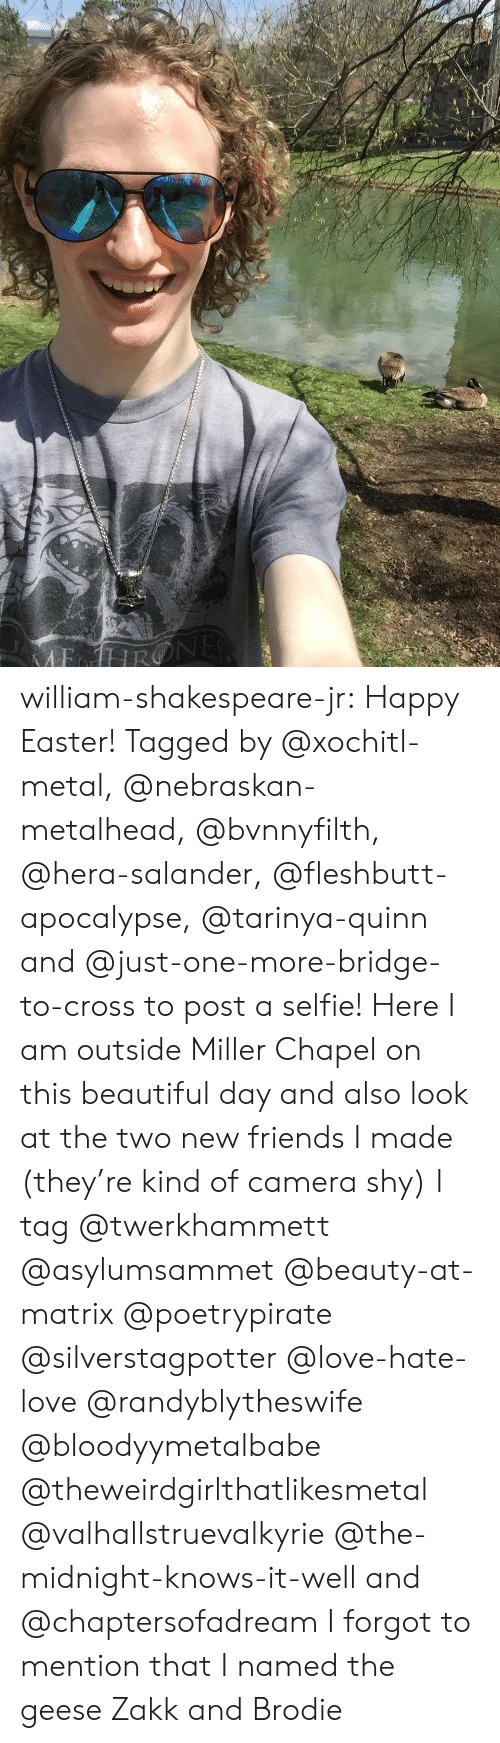 Beautiful, Easter, and Friends: william-shakespeare-jr: Happy Easter! Tagged by @xochitl-metal, @nebraskan-metalhead, @bvnnyfilth, @hera-salander, @fleshbutt-apocalypse, @tarinya-quinn and @just-one-more-bridge-to-cross to post a selfie! Here I am outside Miller Chapel on this beautiful day and also look at the two new friends I made (they're kind of camera shy)   I tag @twerkhammett @asylumsammet @beauty-at-matrix @poetrypirate @silverstagpotter @love-hate-love @randyblytheswife @bloodyymetalbabe @theweirdgirlthatlikesmetal @valhallstruevalkyrie @the-midnight-knows-it-well and @chaptersofadream  I forgot to mention that I named the geese Zakk and Brodie